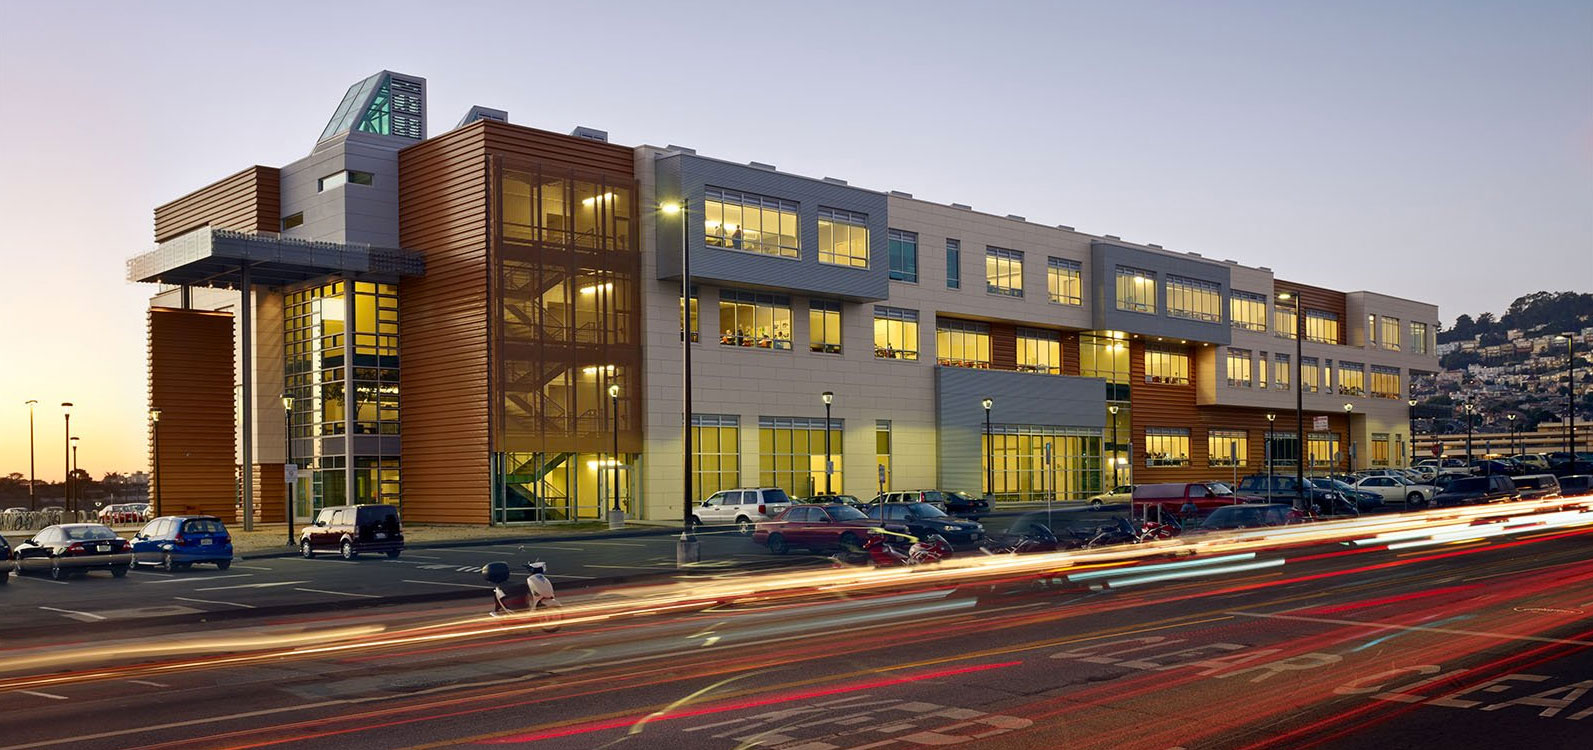 CCSF Joint-Use Facility